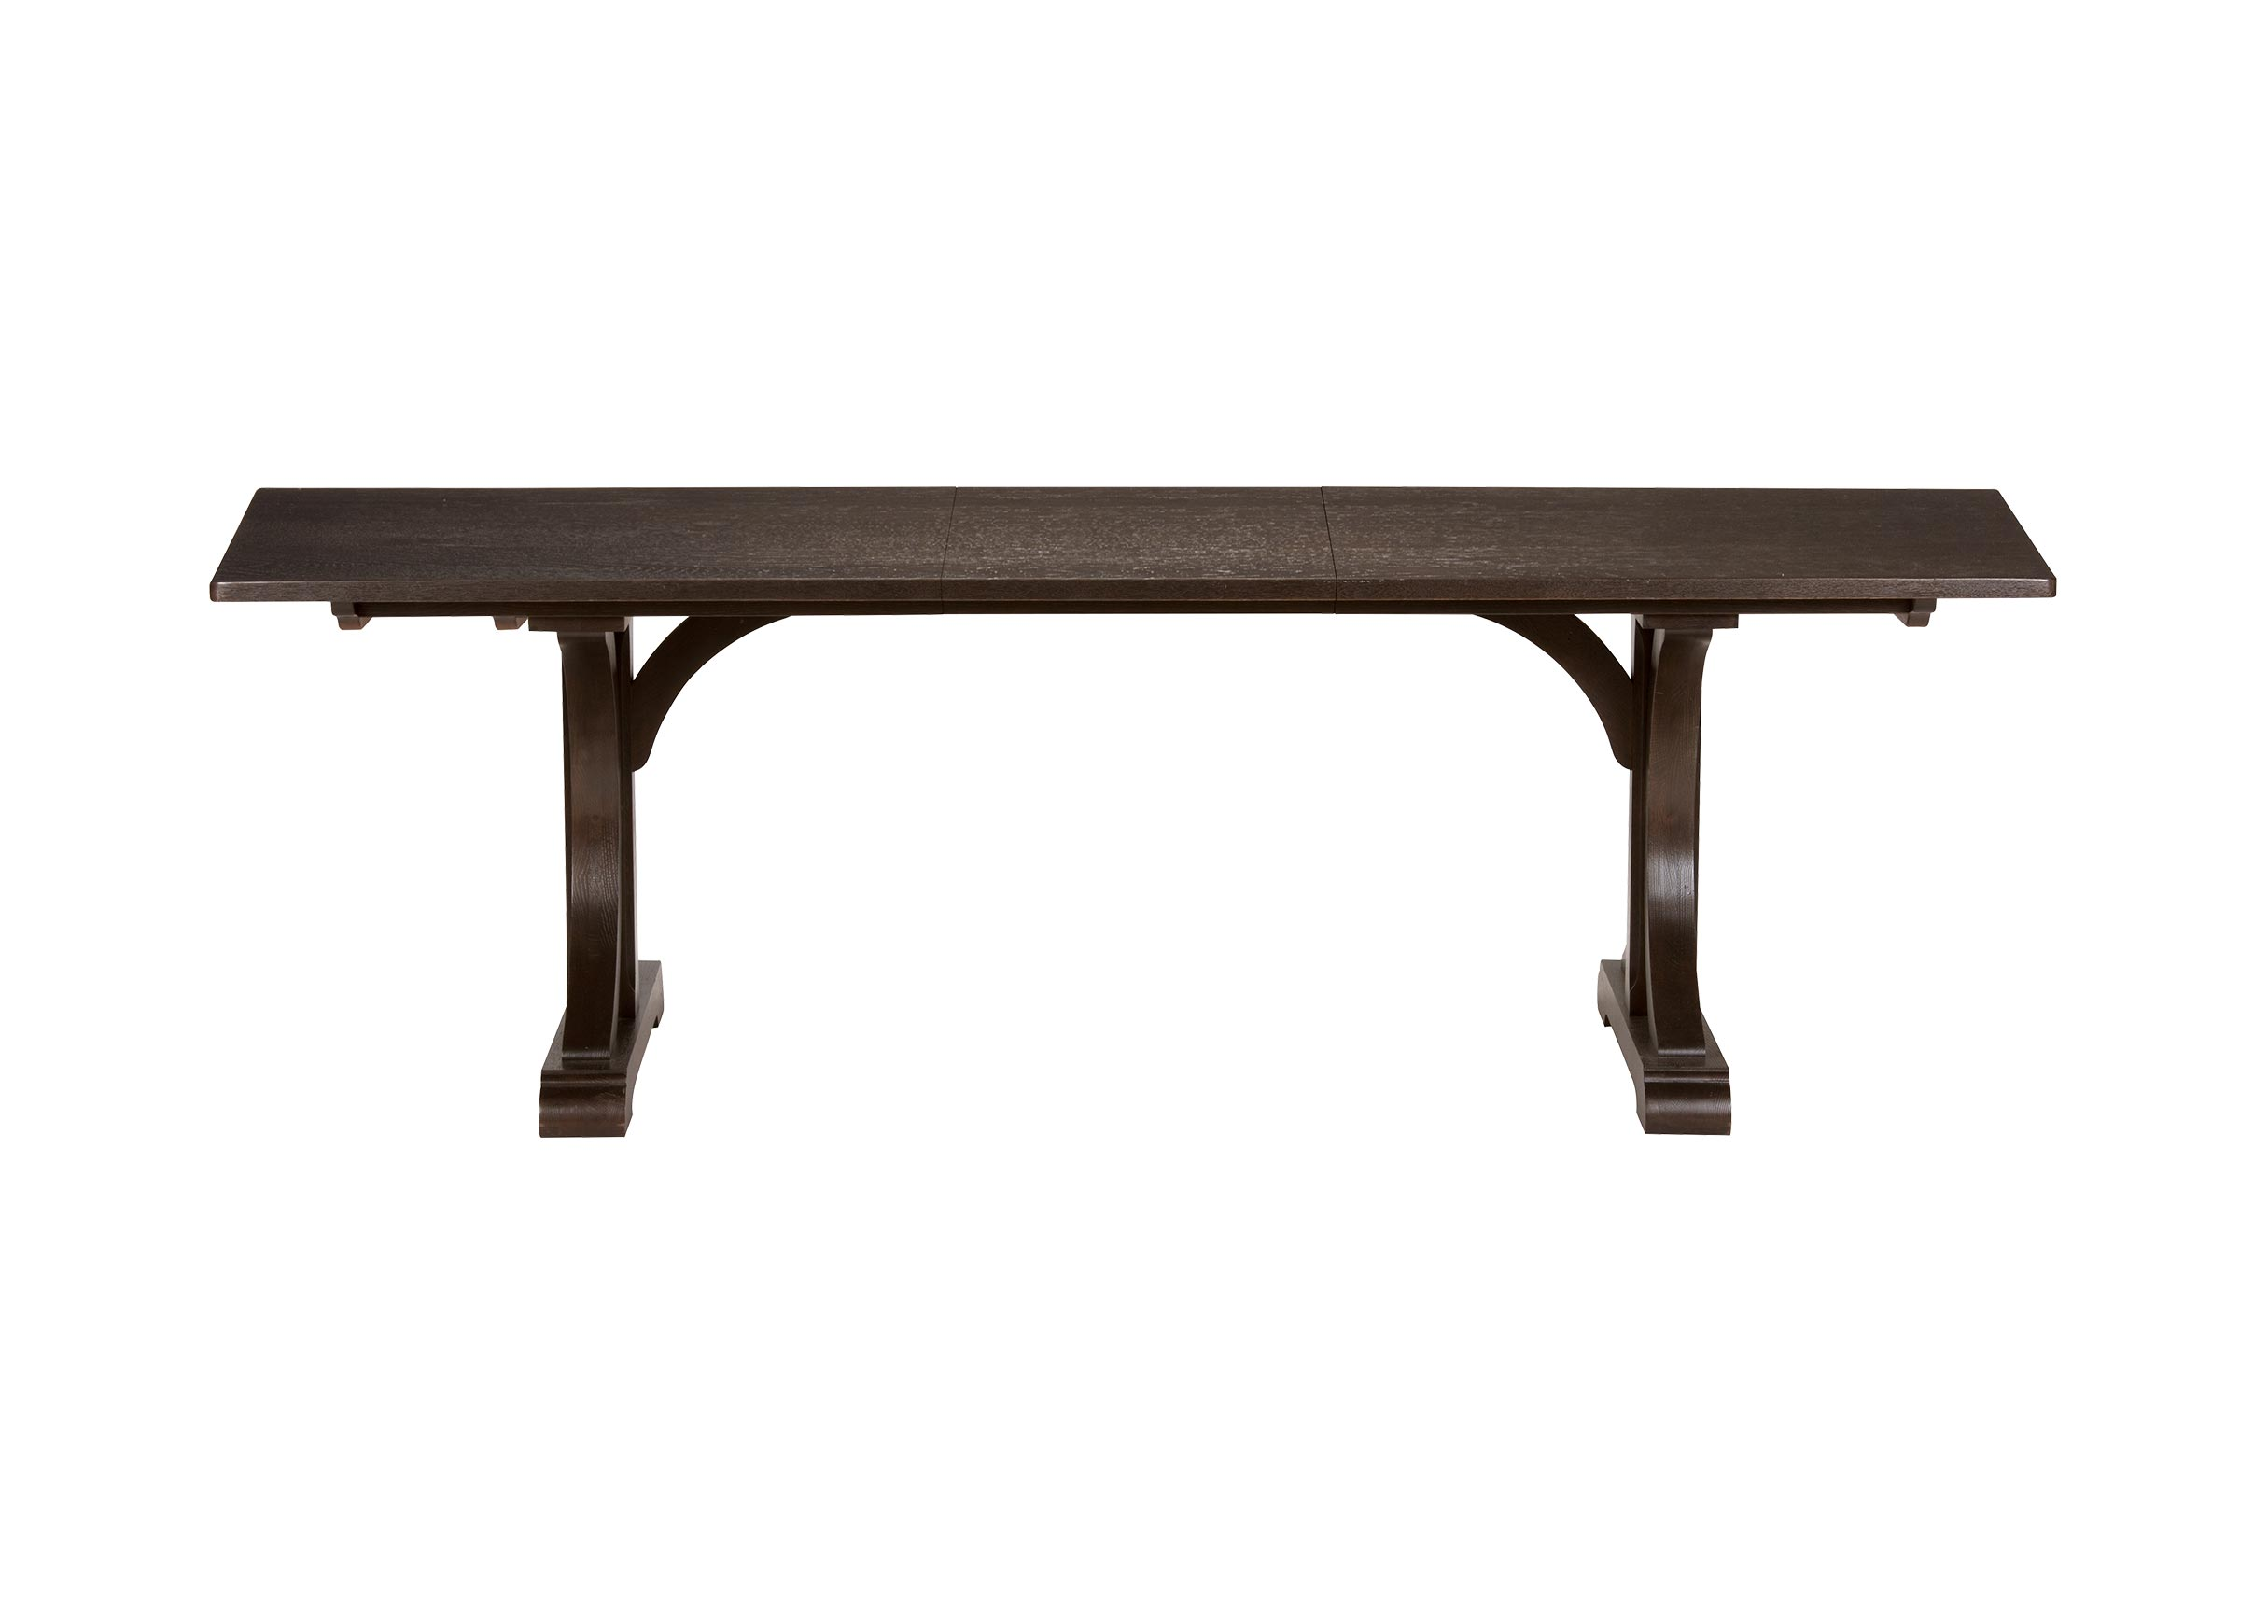 trestle dining room tables   Corin Trestle Extension Dining Table   Ethan Allen